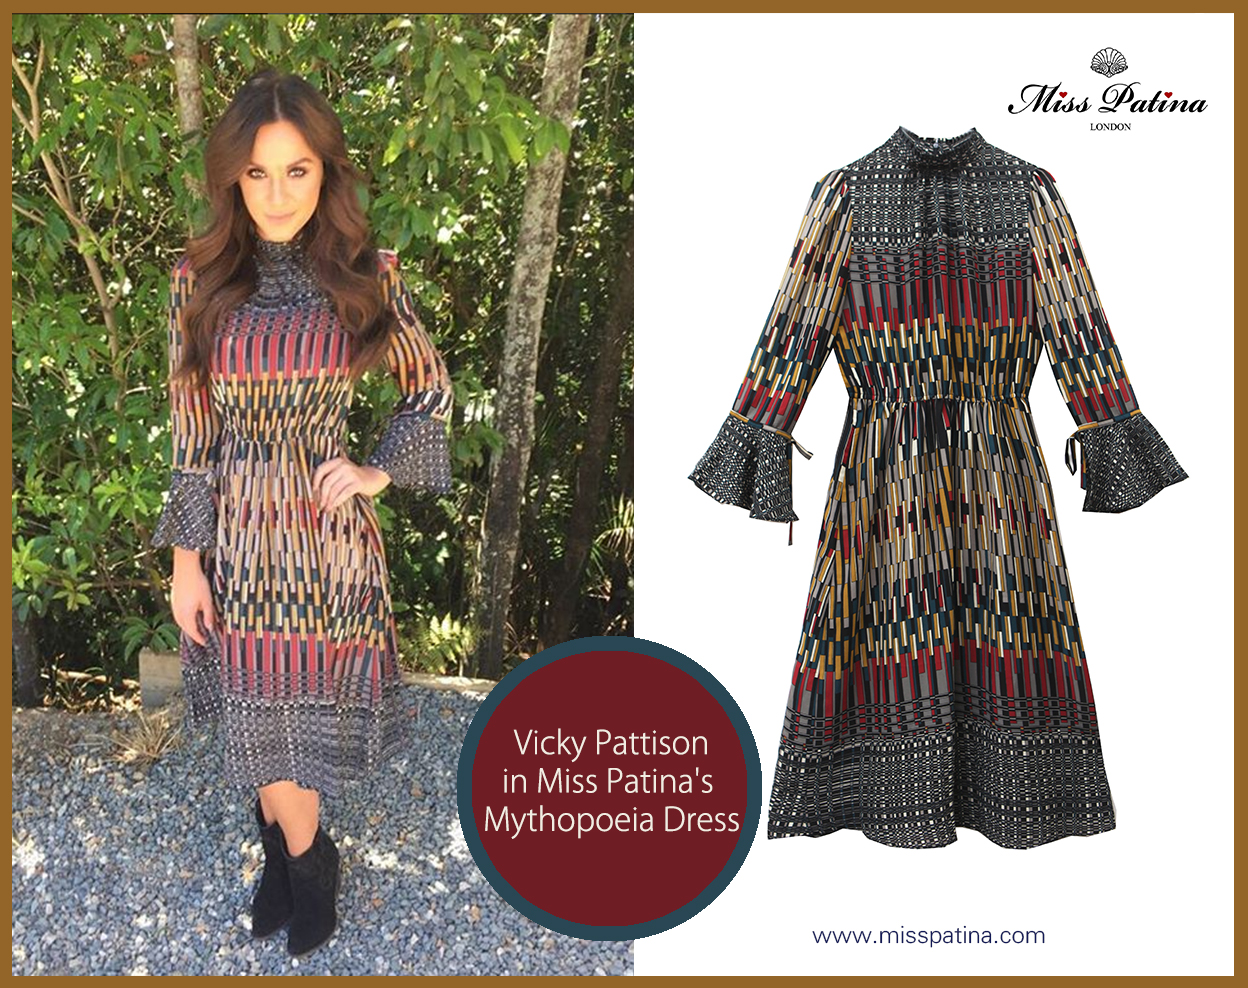 Spotted! Vicky Pattison in Miss Patina!